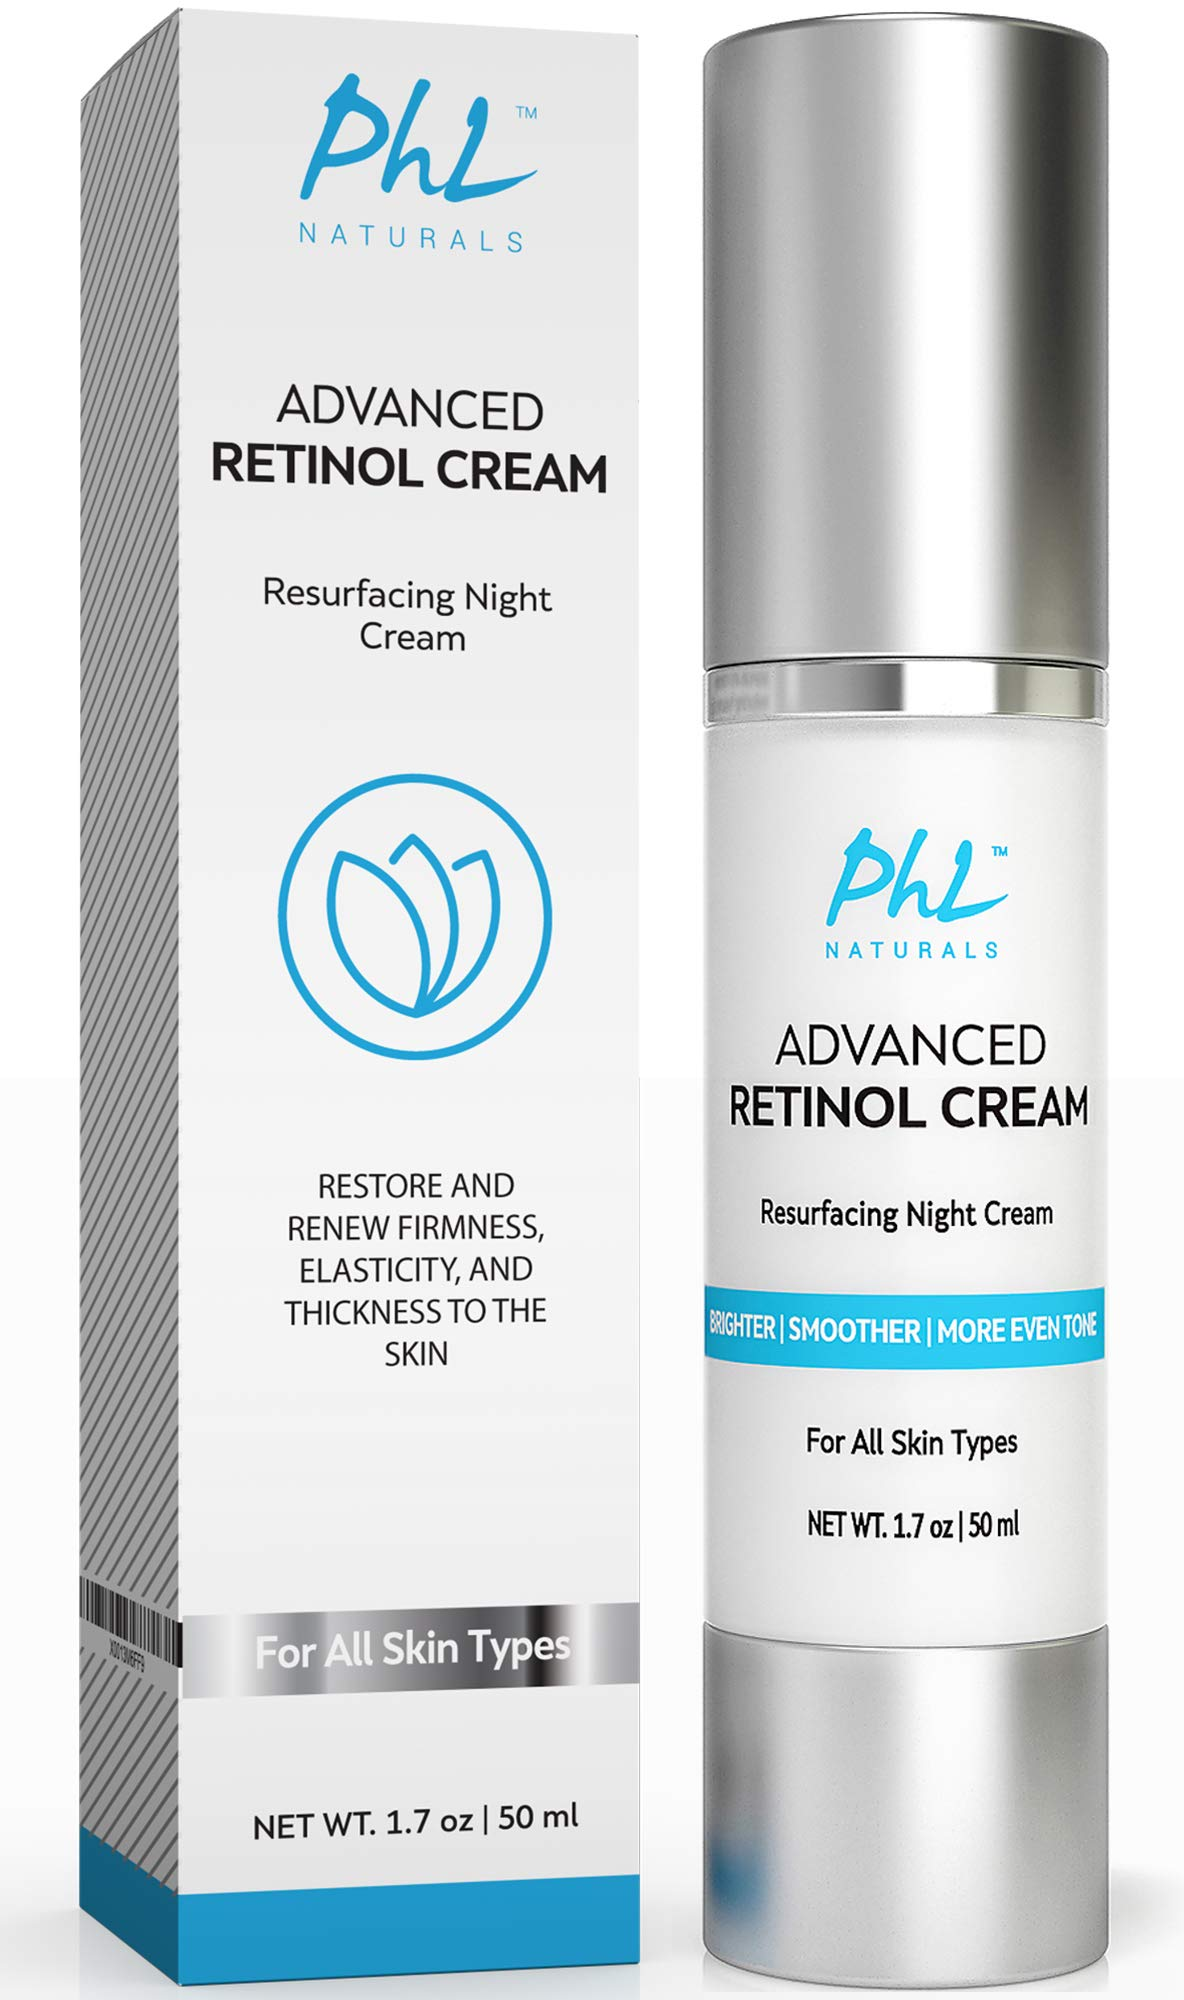 lactation-night-facial-creams-that-contain-retinol-cameron